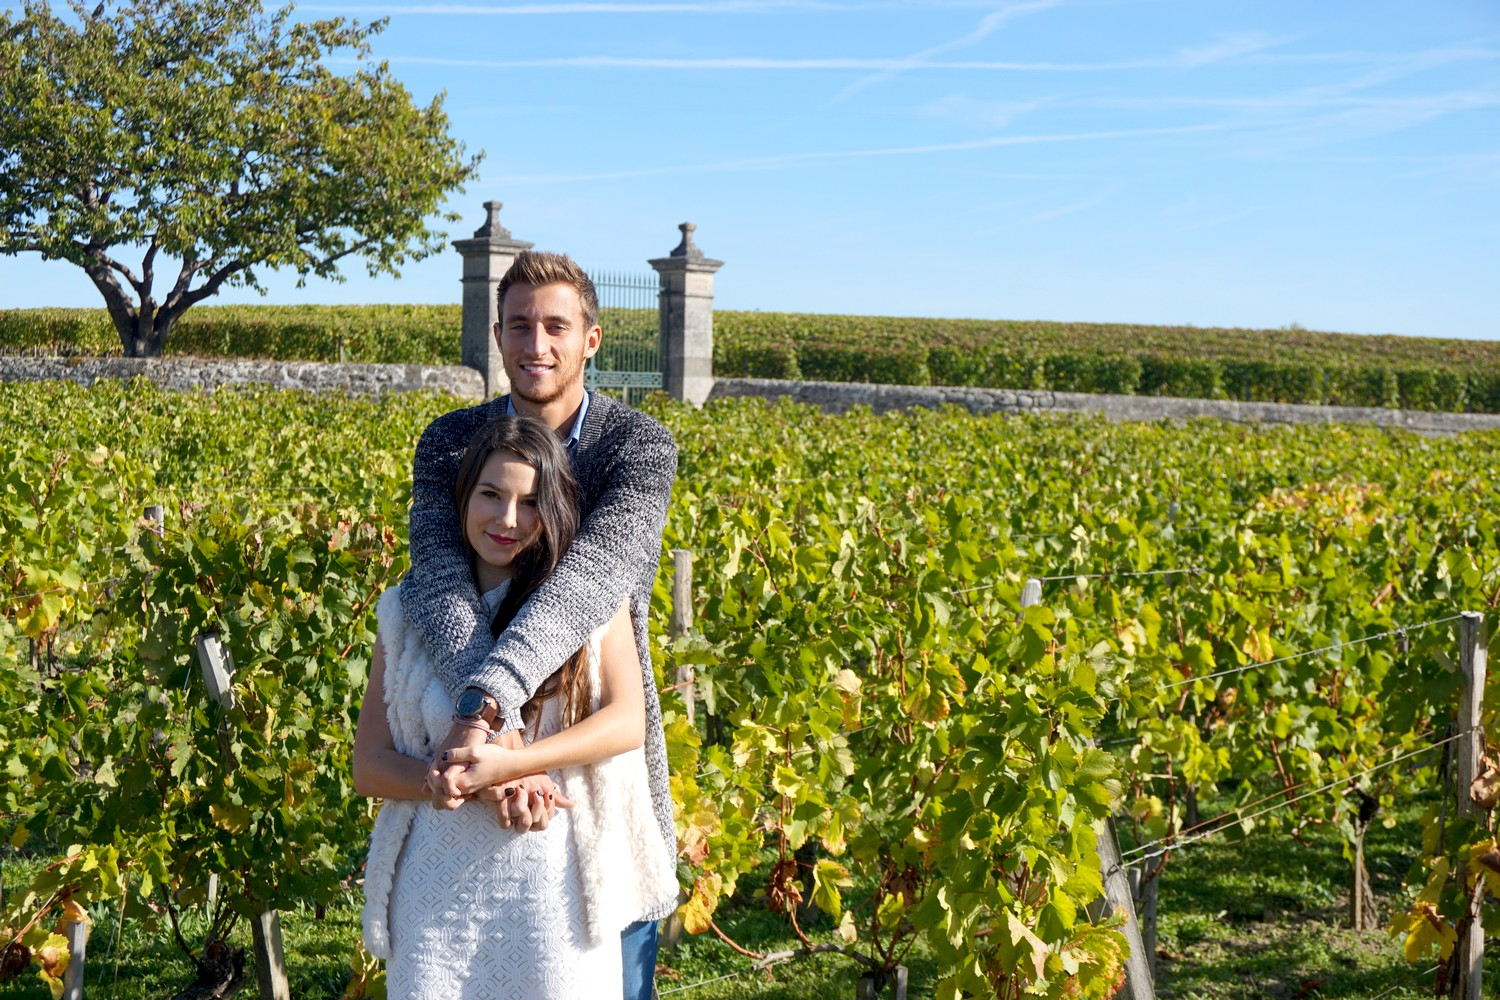 1-an-du-blog-en-couple-bordeaux-corse-blog-voyage-lifestyle-mode-look-shooting-photo-couple-vigne-04